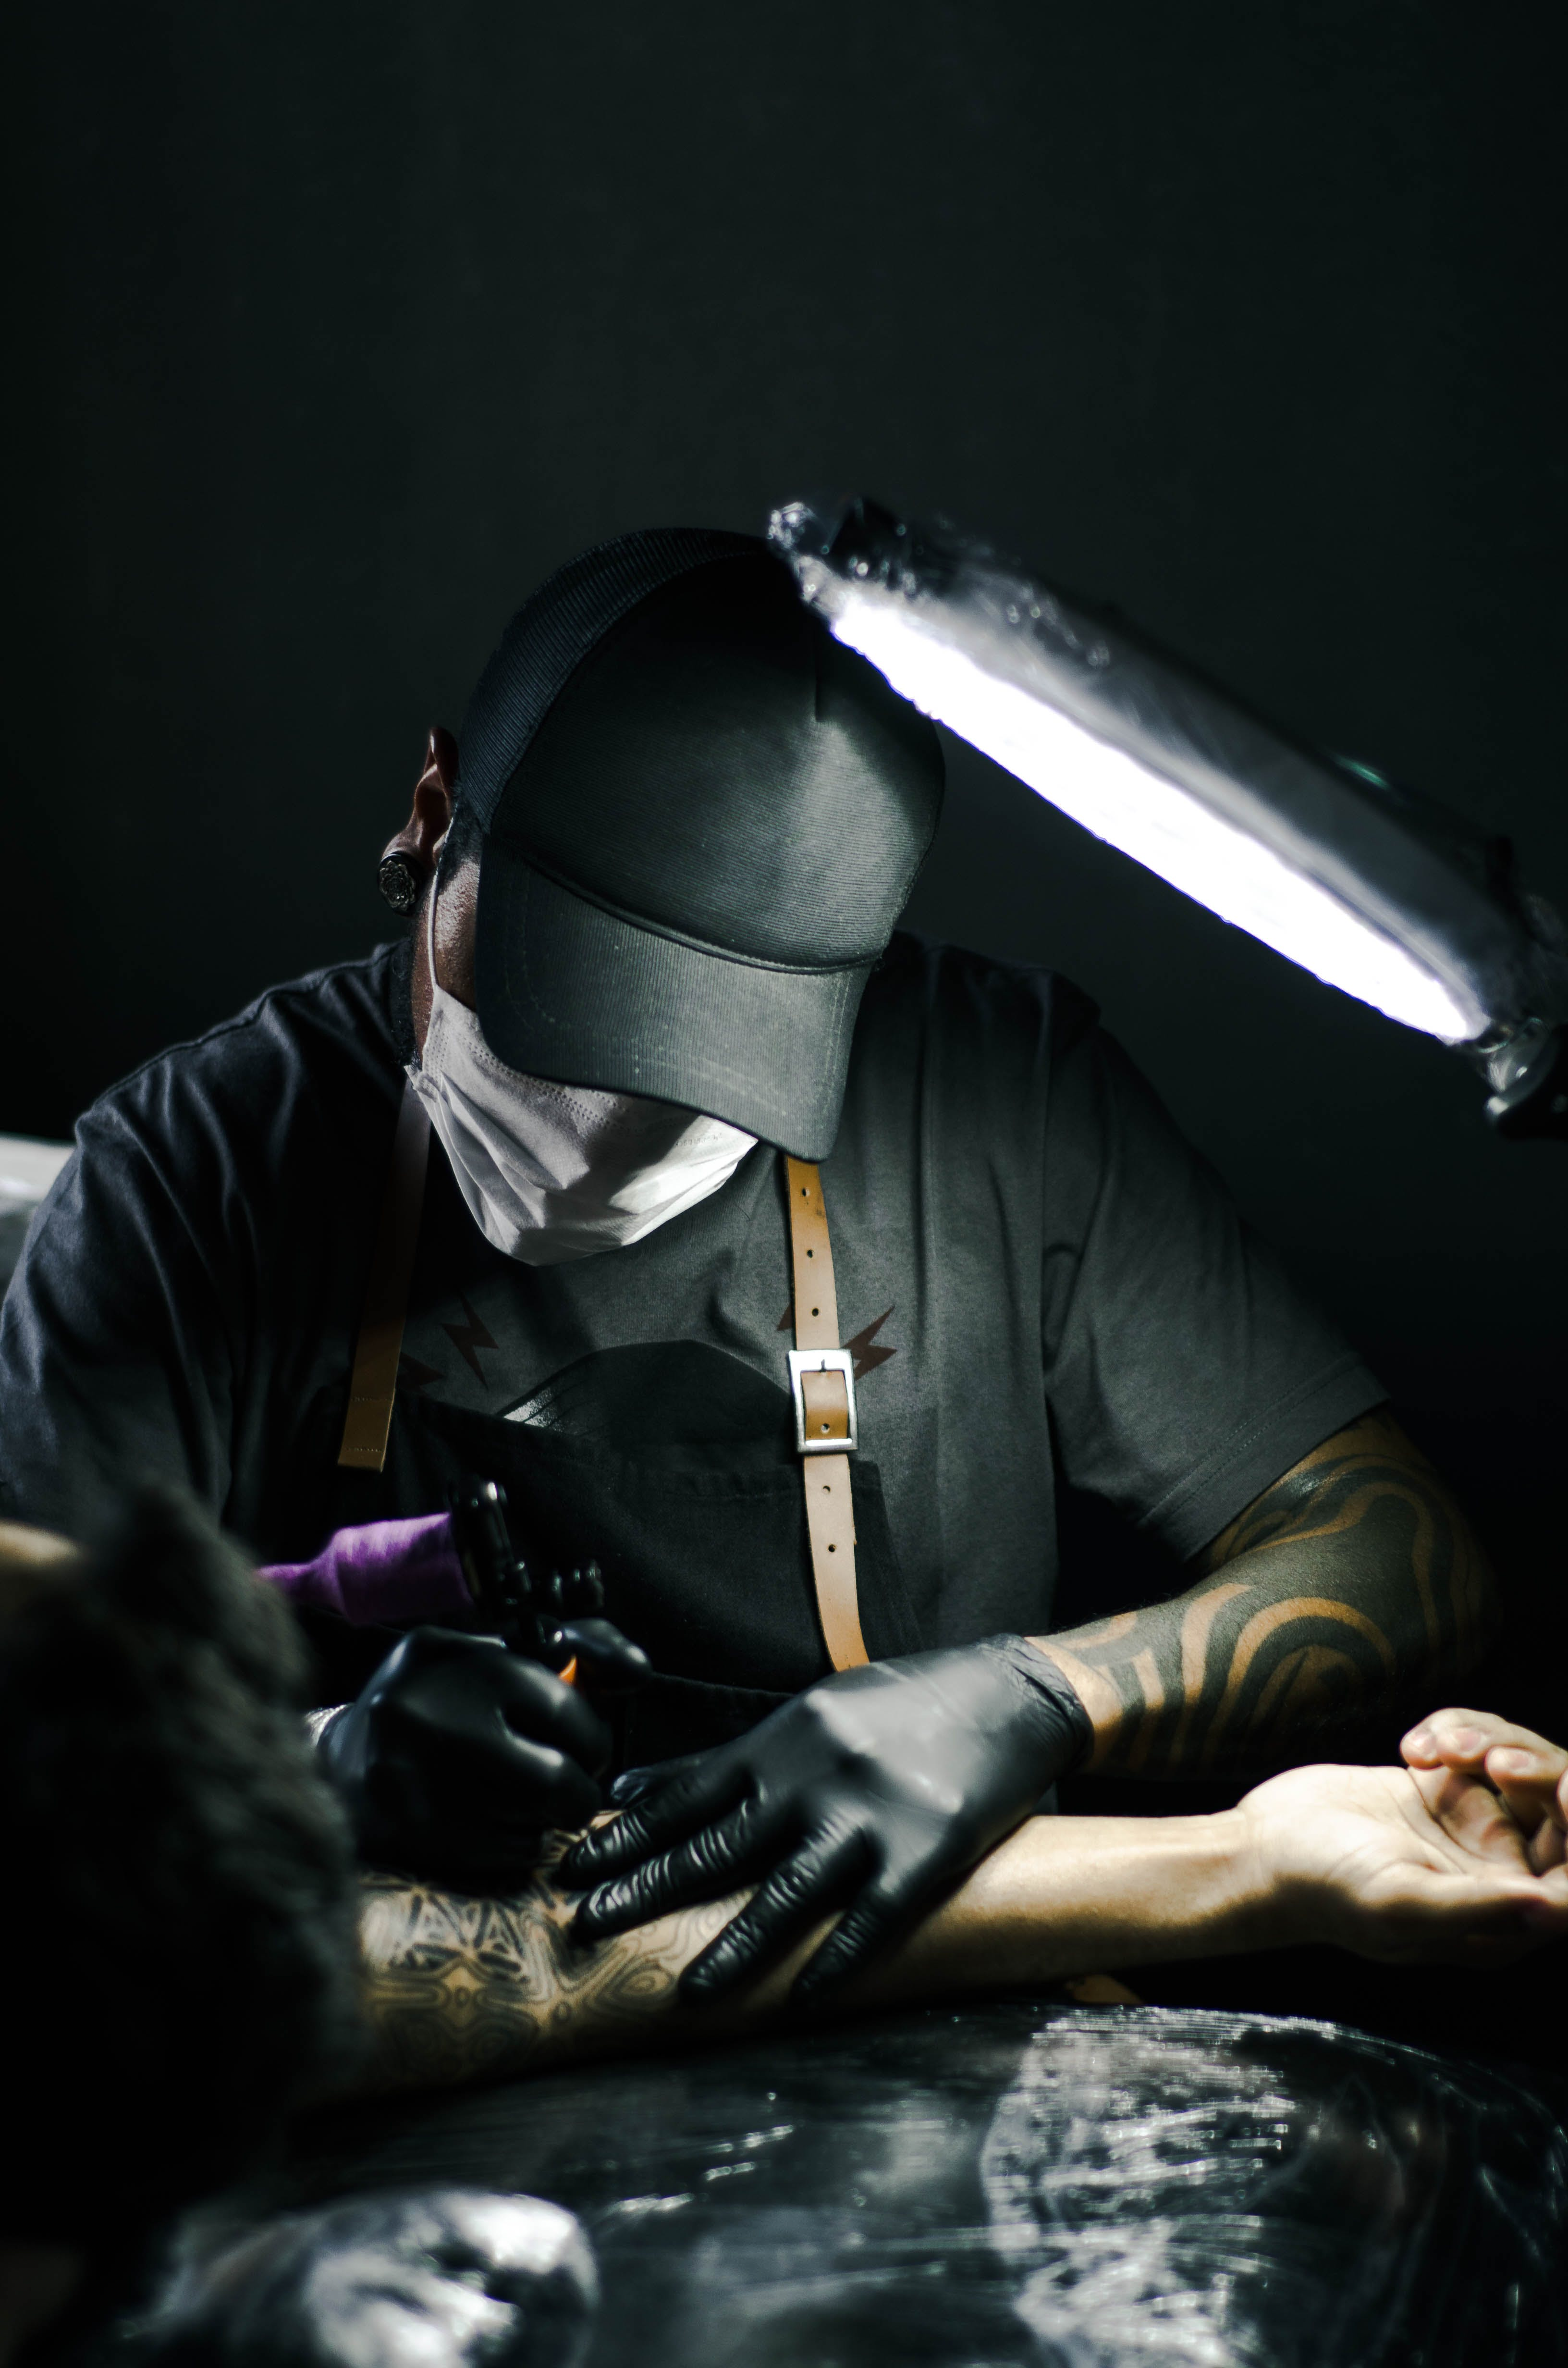 Tattoo artist in black gloves drawing a tattoo on a person's arm